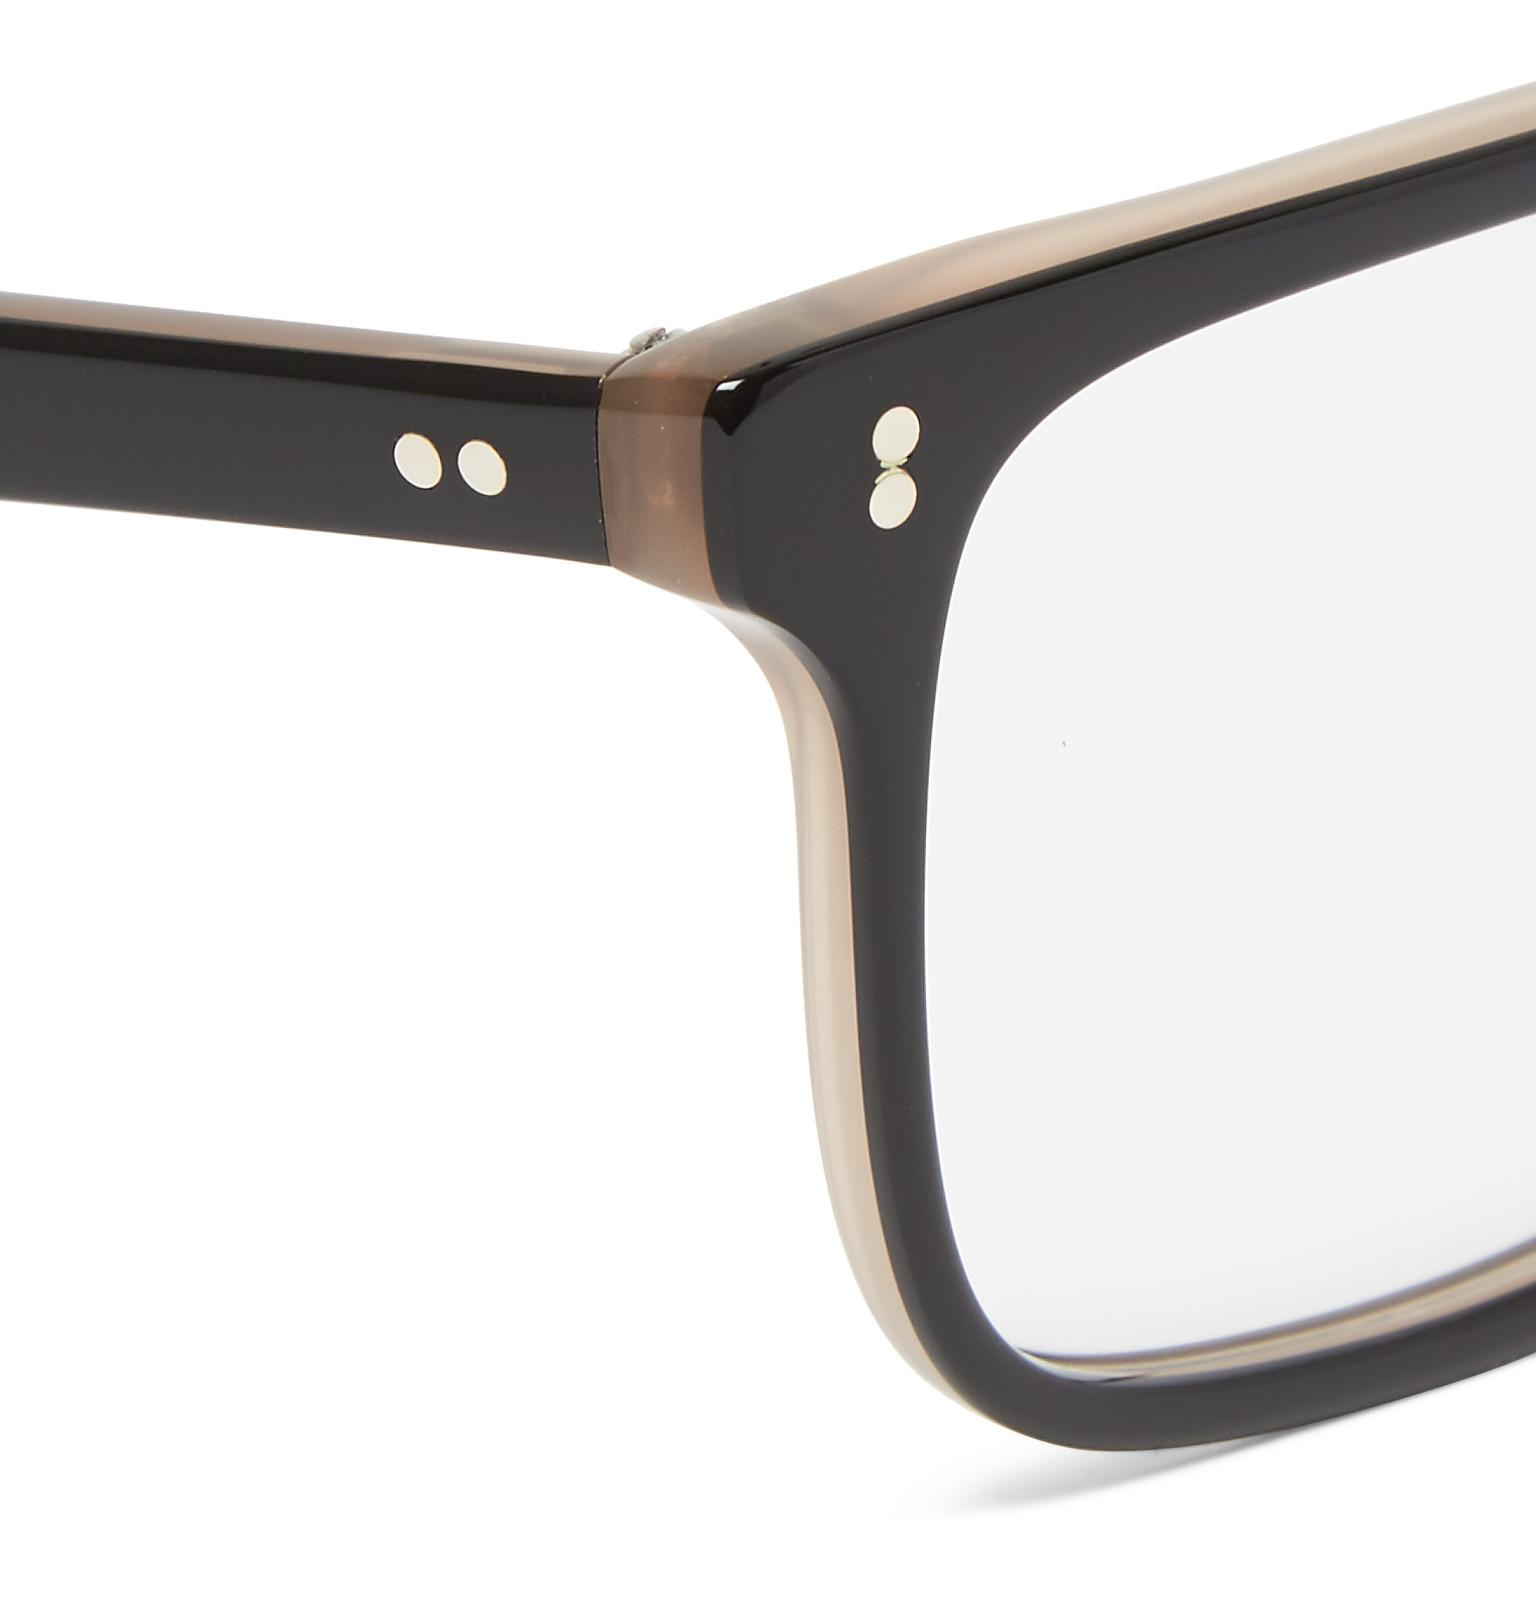 1b15481ab5 Lyst - Kingsman Cutler And Gross Square-frame Acetate Optical ...